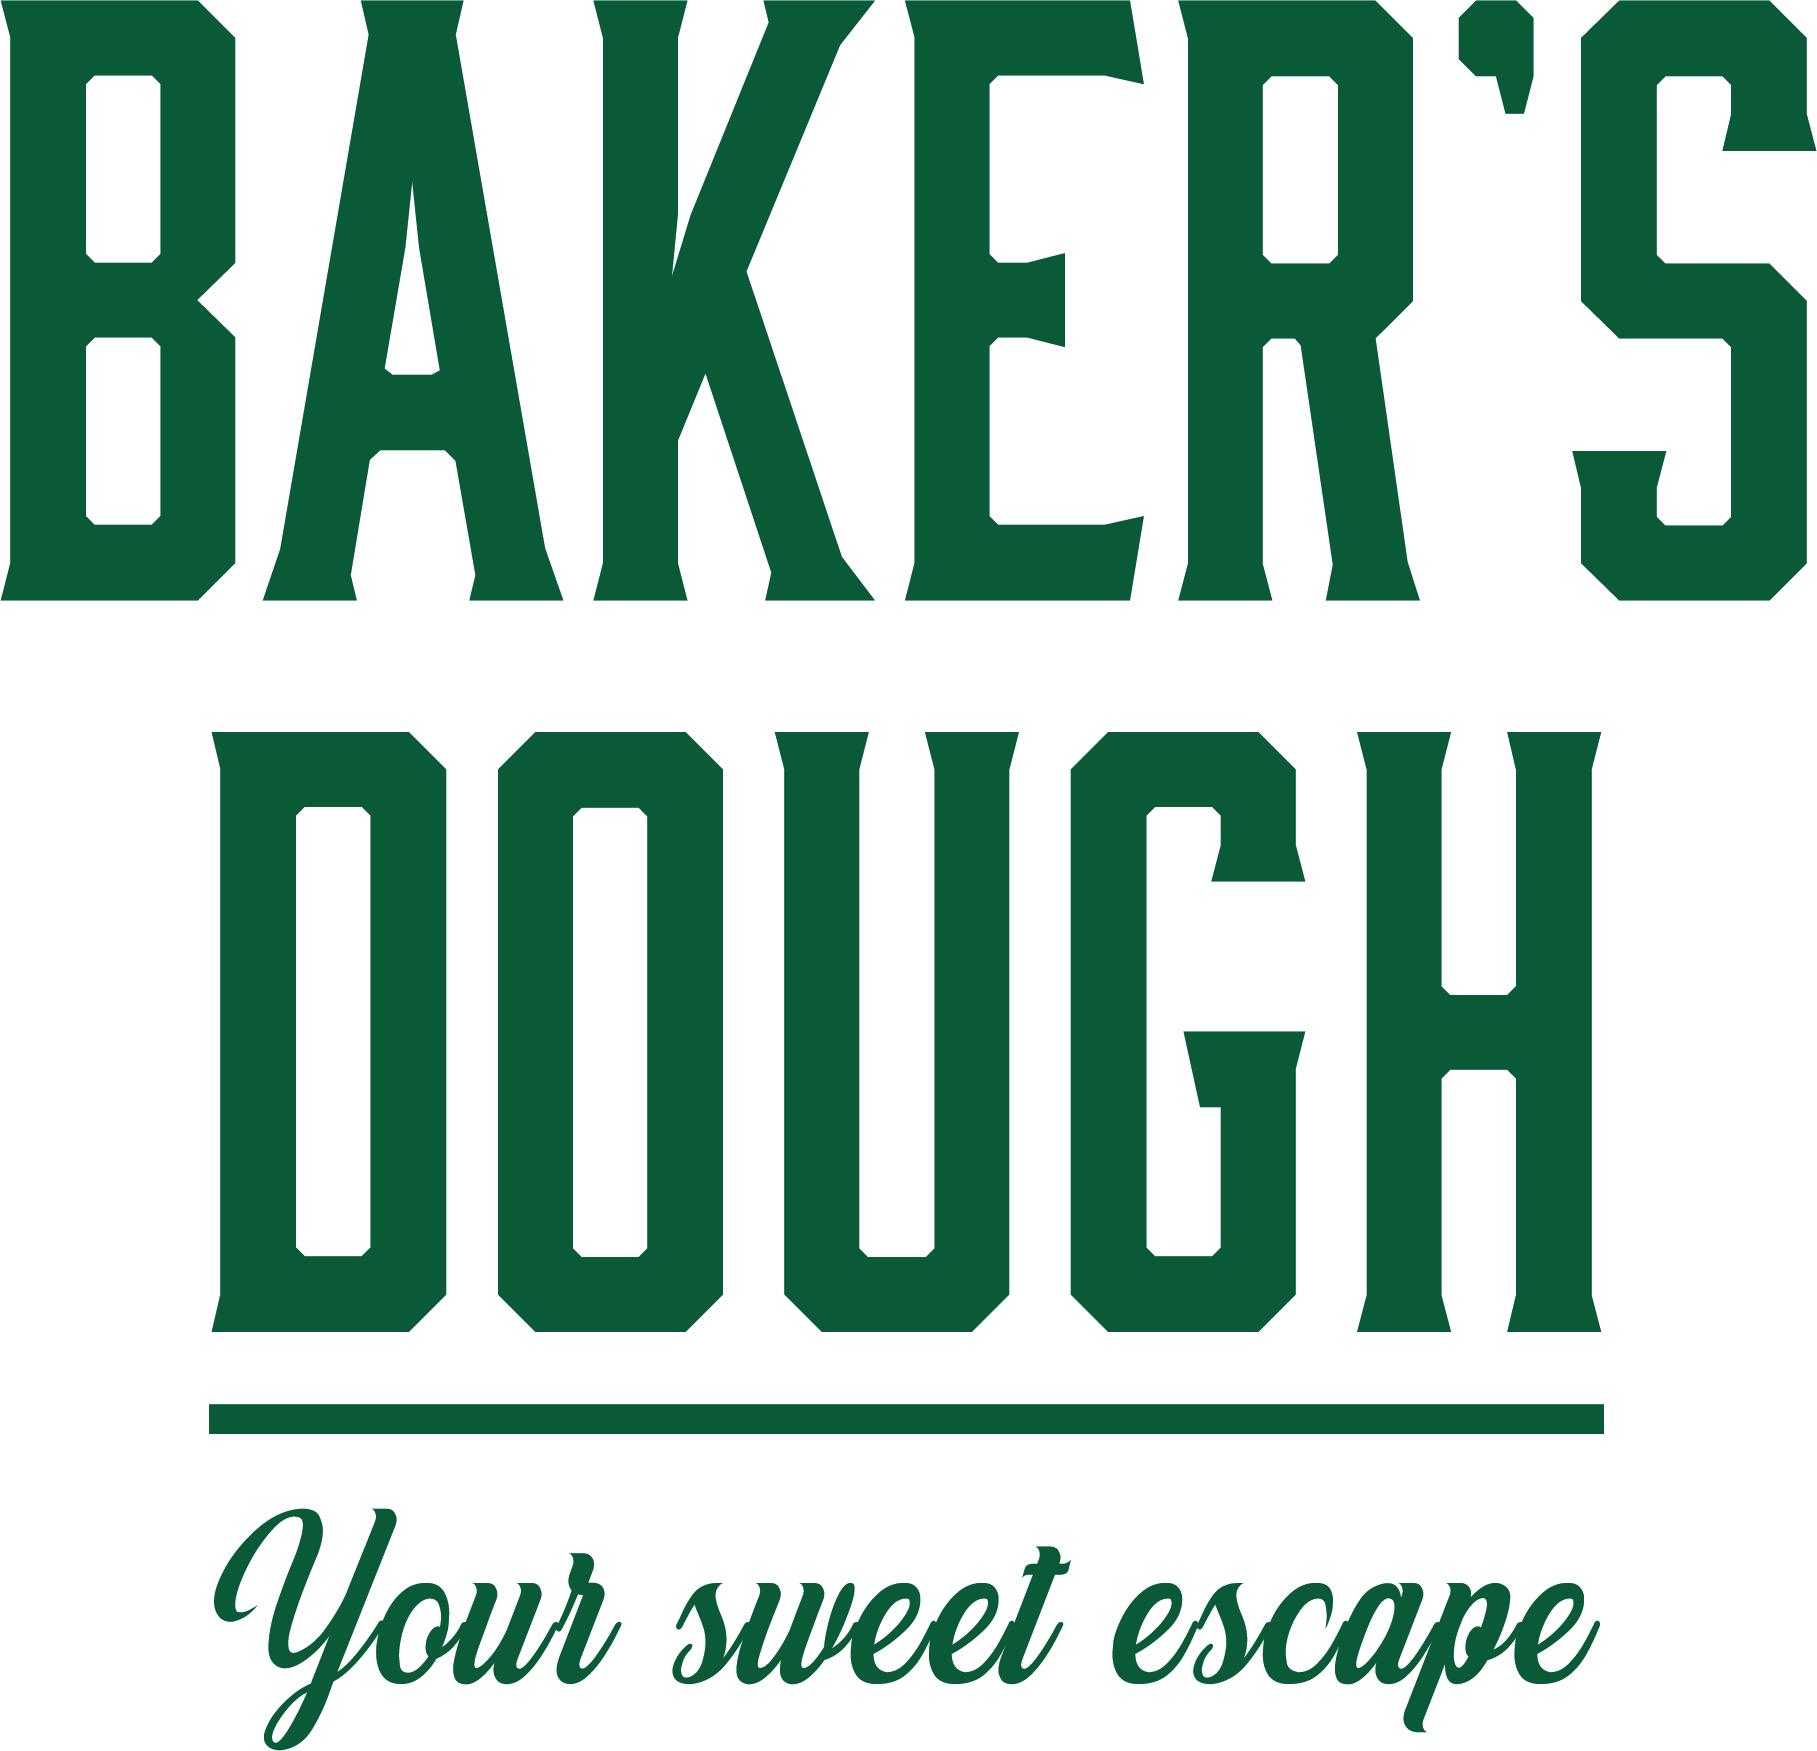 Bakers Dough Soest